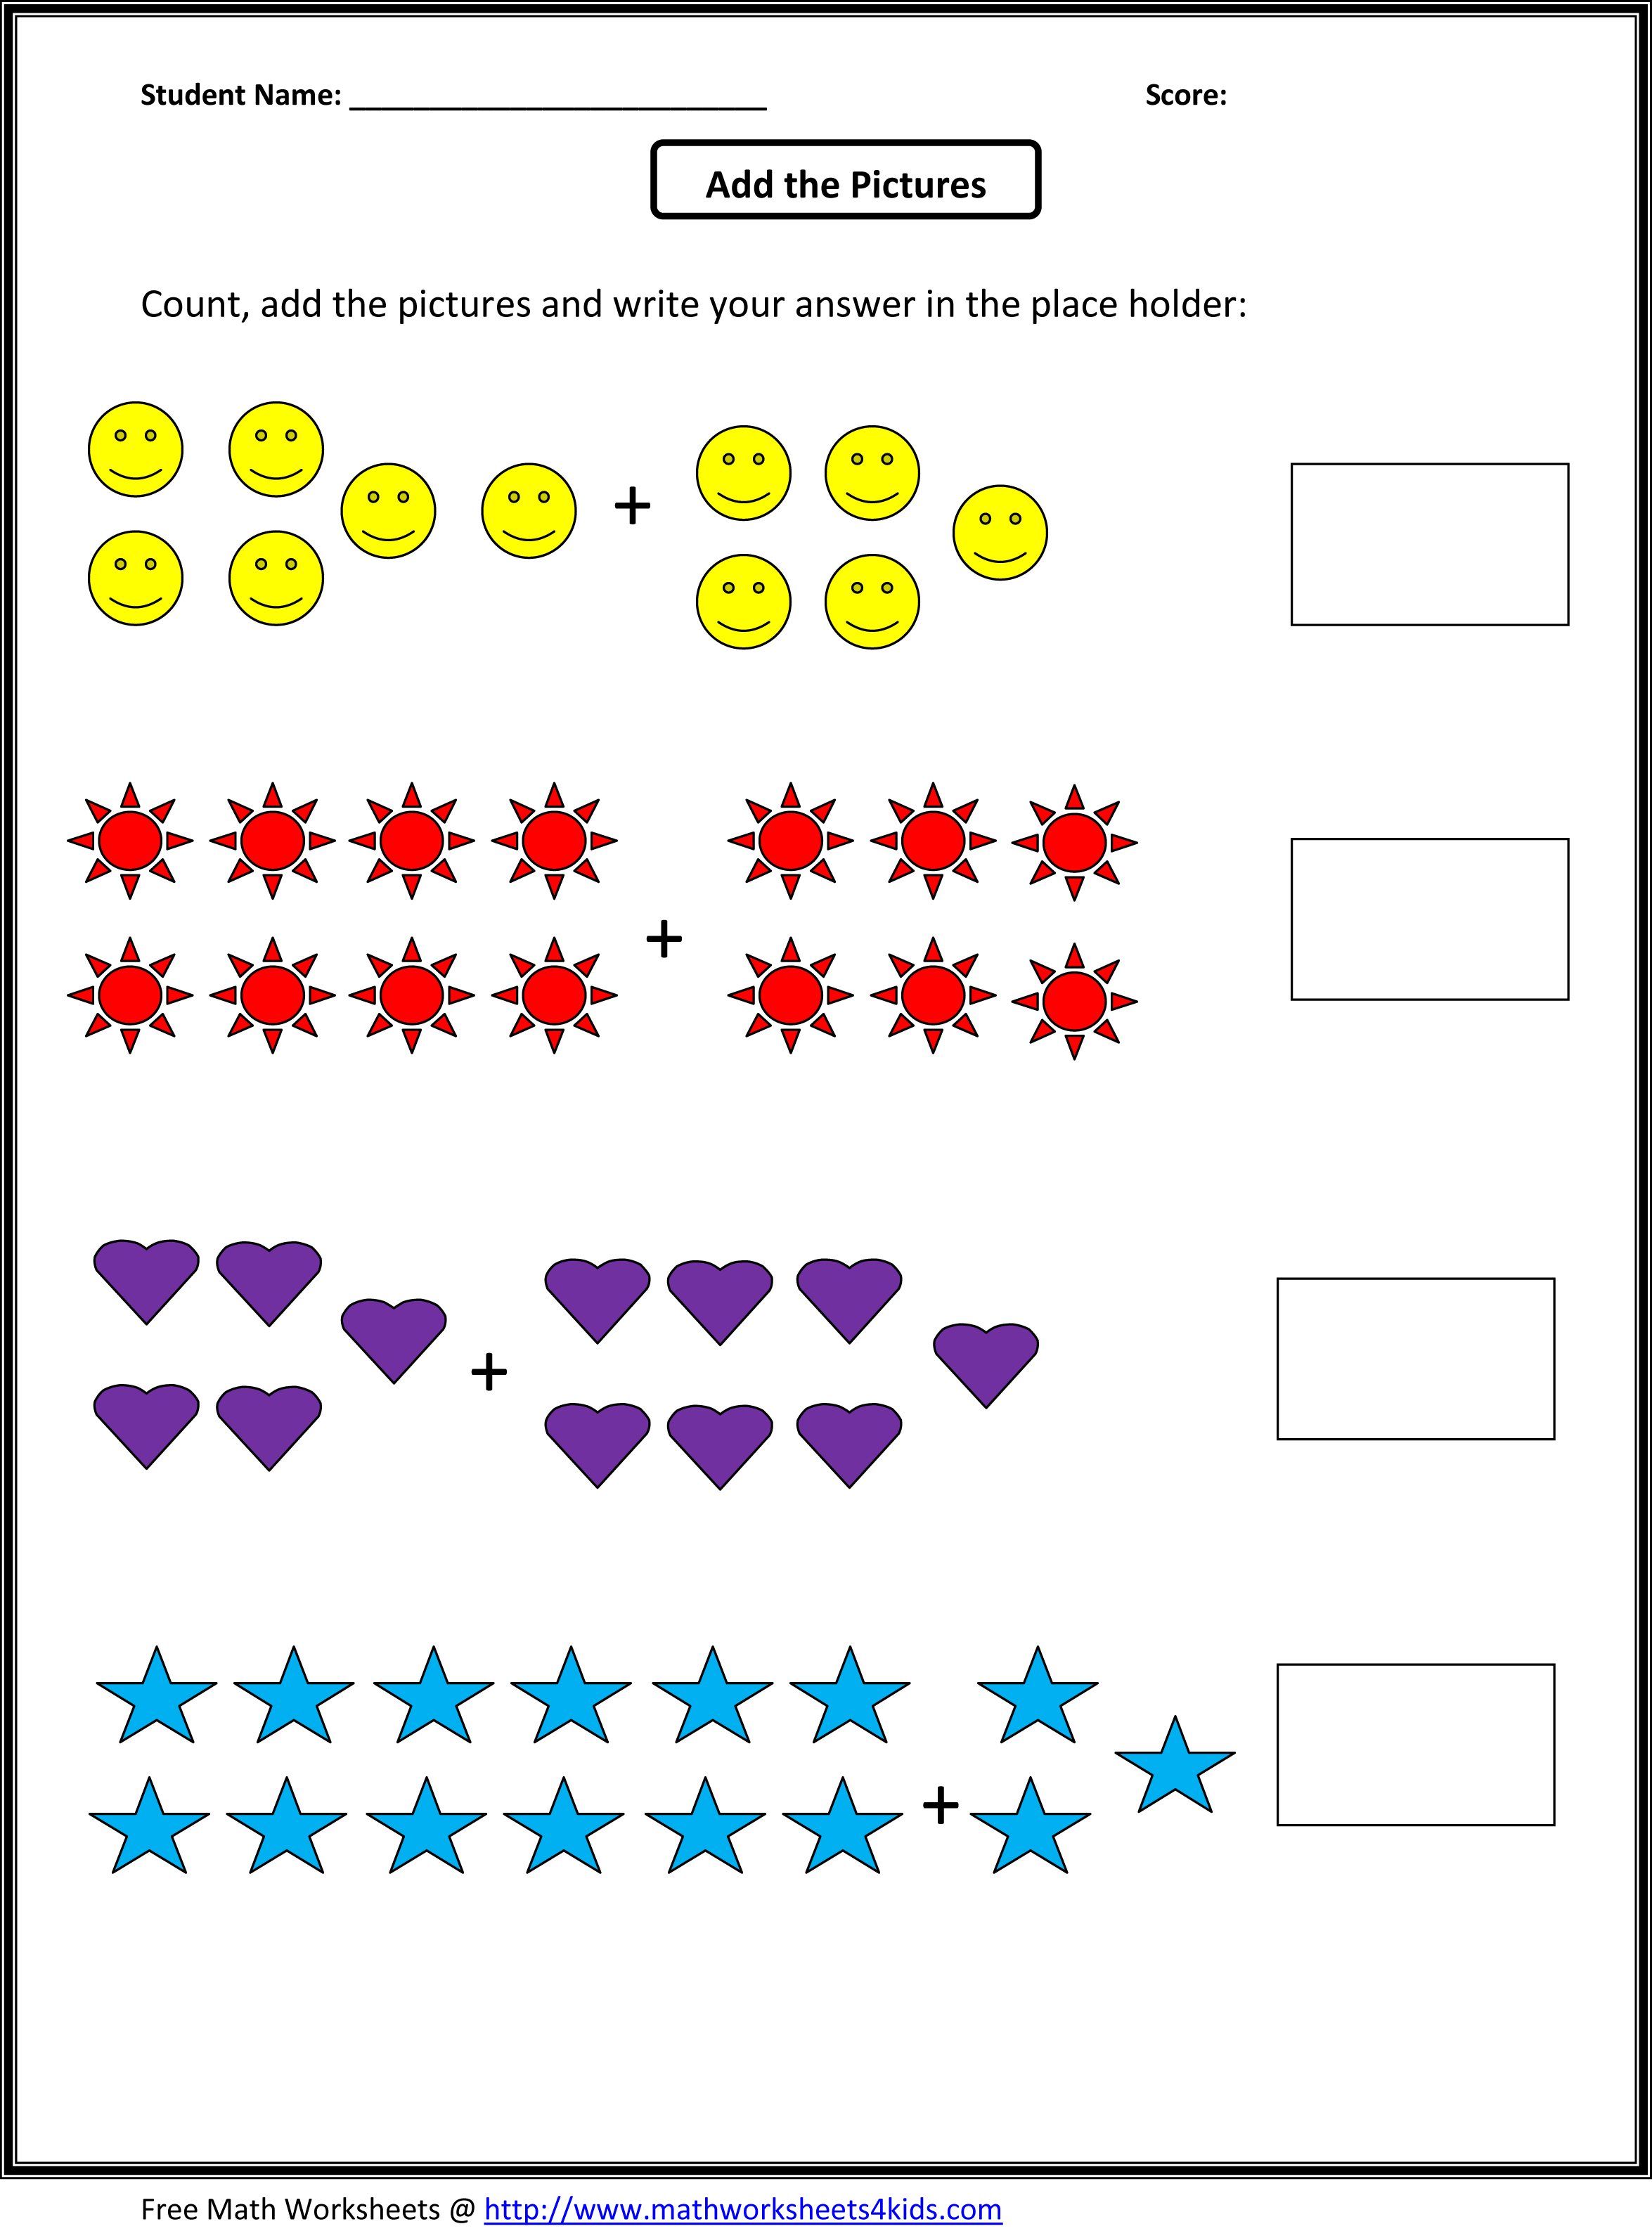 Weirdmailus  Pleasant Grade  Maths Worksheet  Reocurent With Heavenly Math Worksheets For St Grade Free  Reocurent With Lovely Geometry Volume Worksheets Also Create Worksheet Vba In Addition Weighted Average Worksheet And Micrometer Worksheet As Well As Time To The Hour Worksheet Additionally World Geography Worksheets High School From Reocurentcom With Weirdmailus  Heavenly Grade  Maths Worksheet  Reocurent With Lovely Math Worksheets For St Grade Free  Reocurent And Pleasant Geometry Volume Worksheets Also Create Worksheet Vba In Addition Weighted Average Worksheet From Reocurentcom